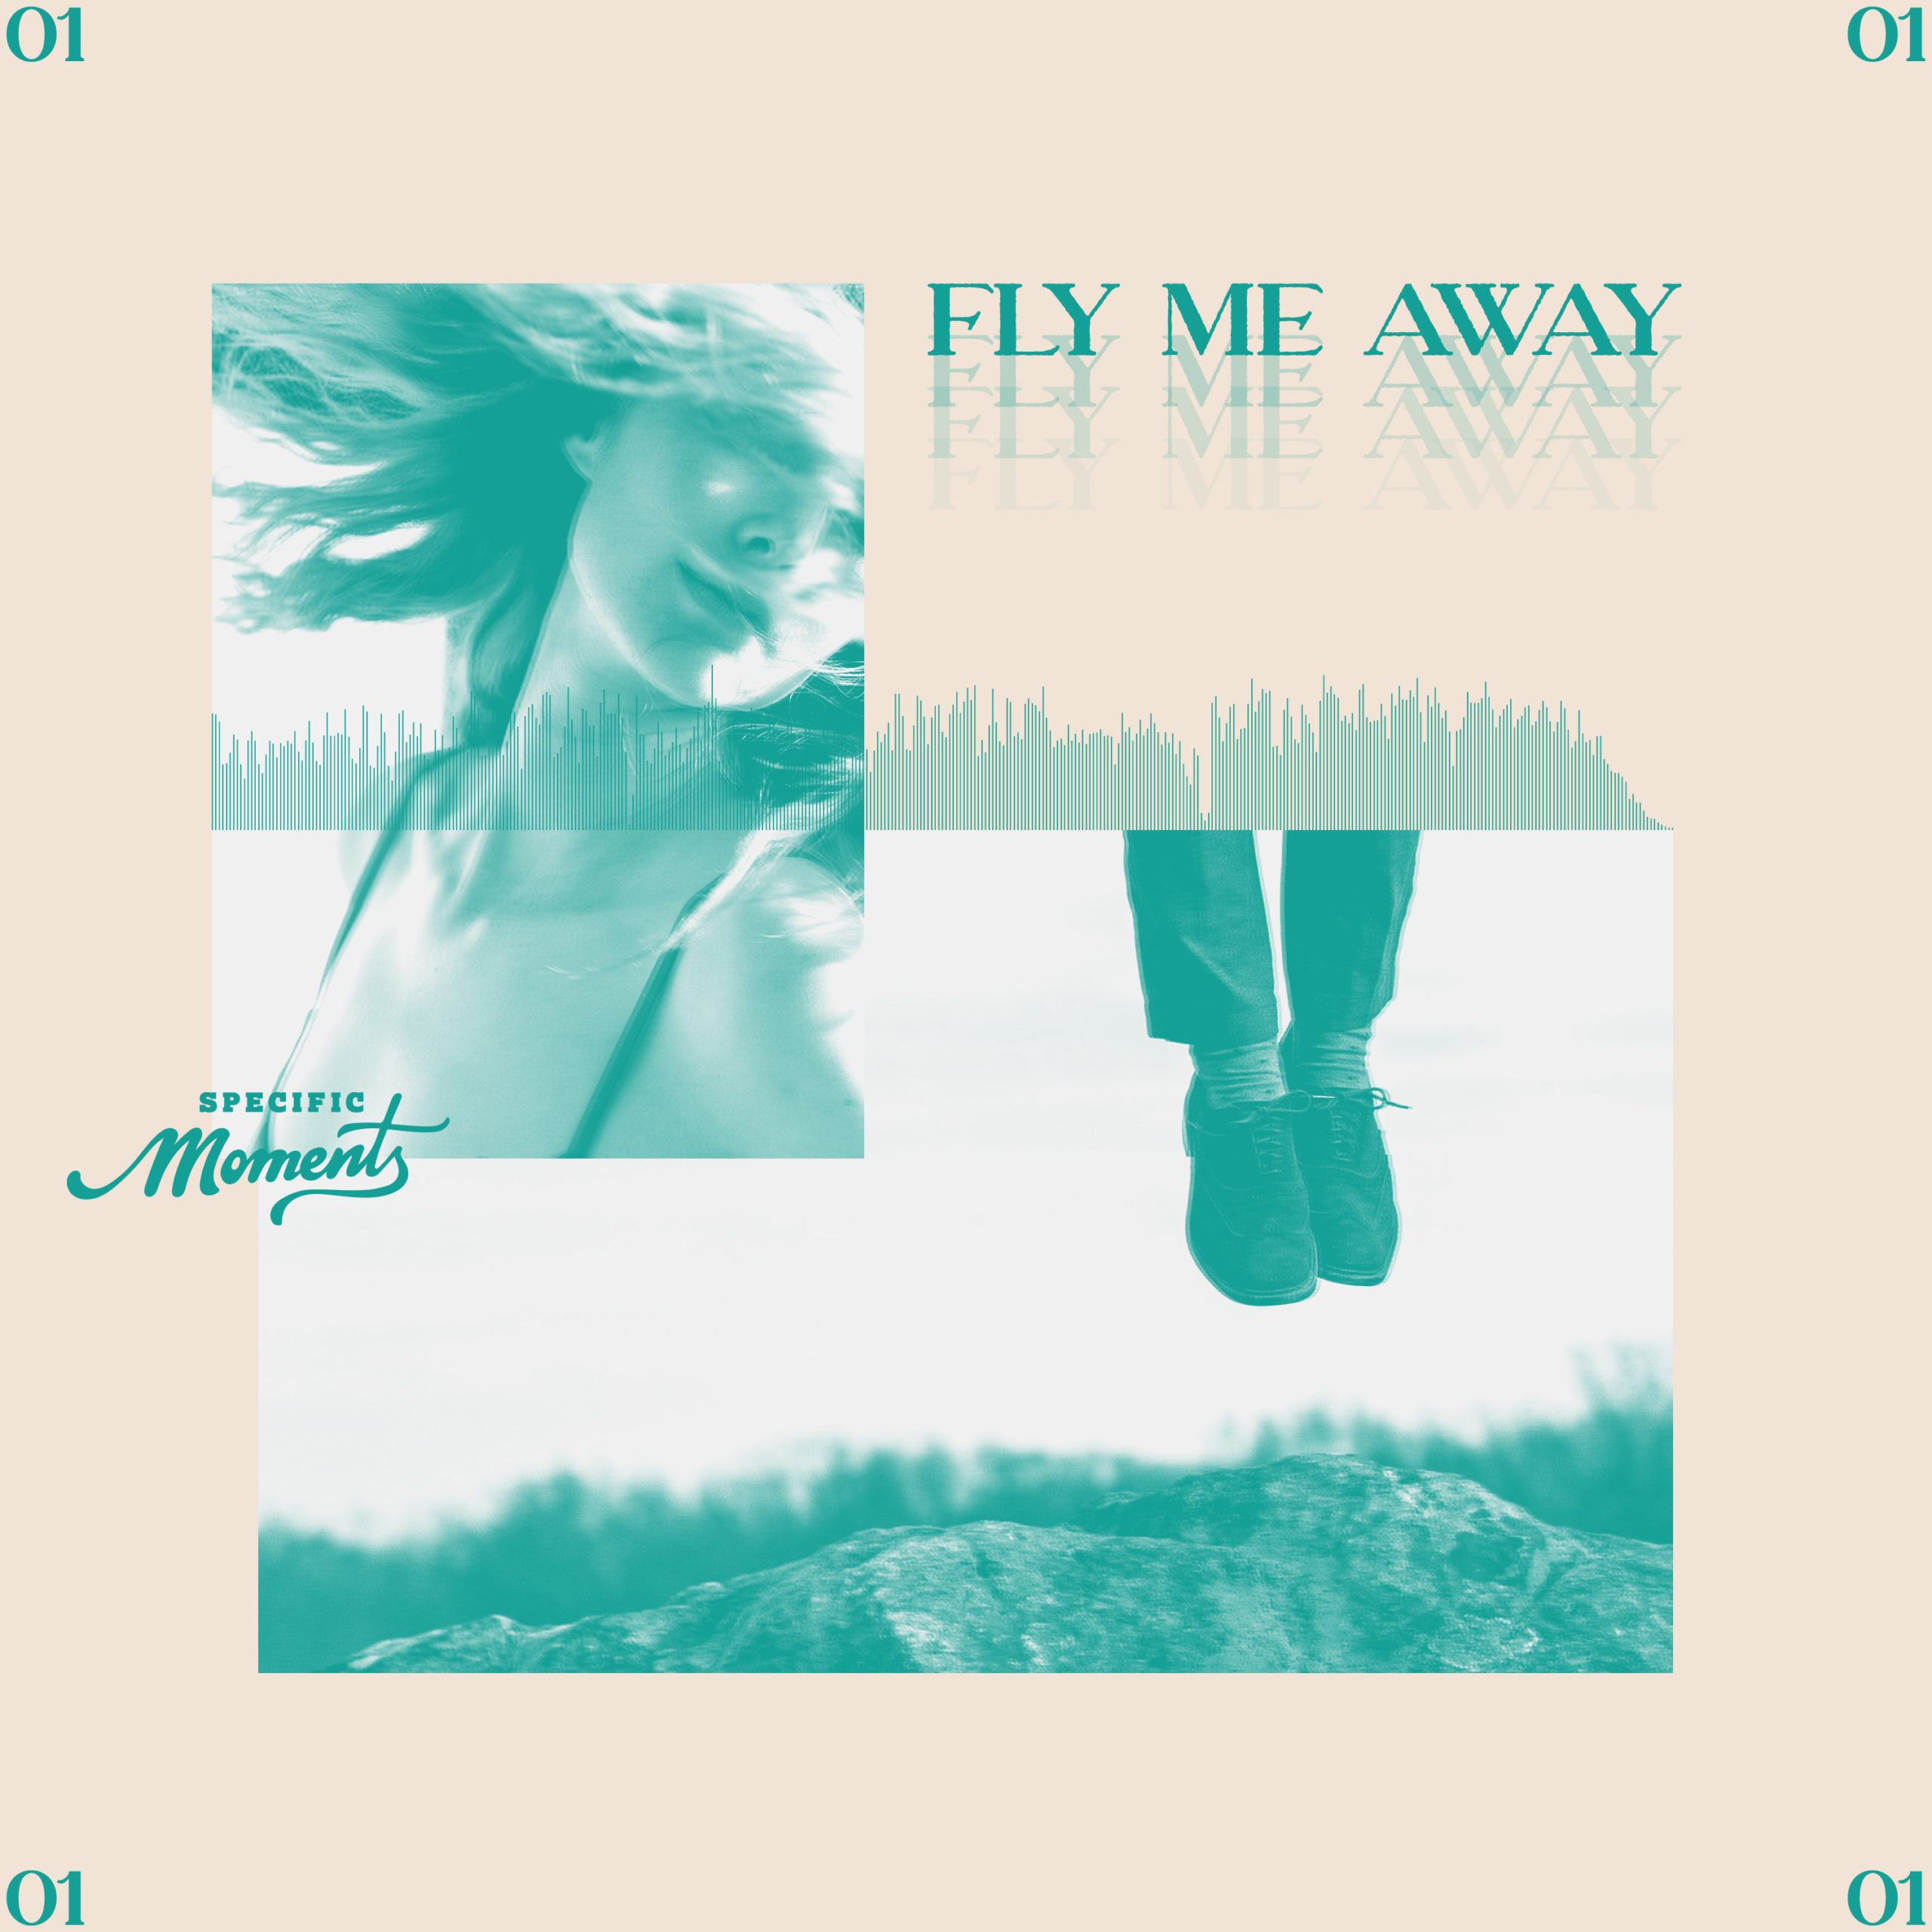 Cover art: Specific Moments - Fly Me Away